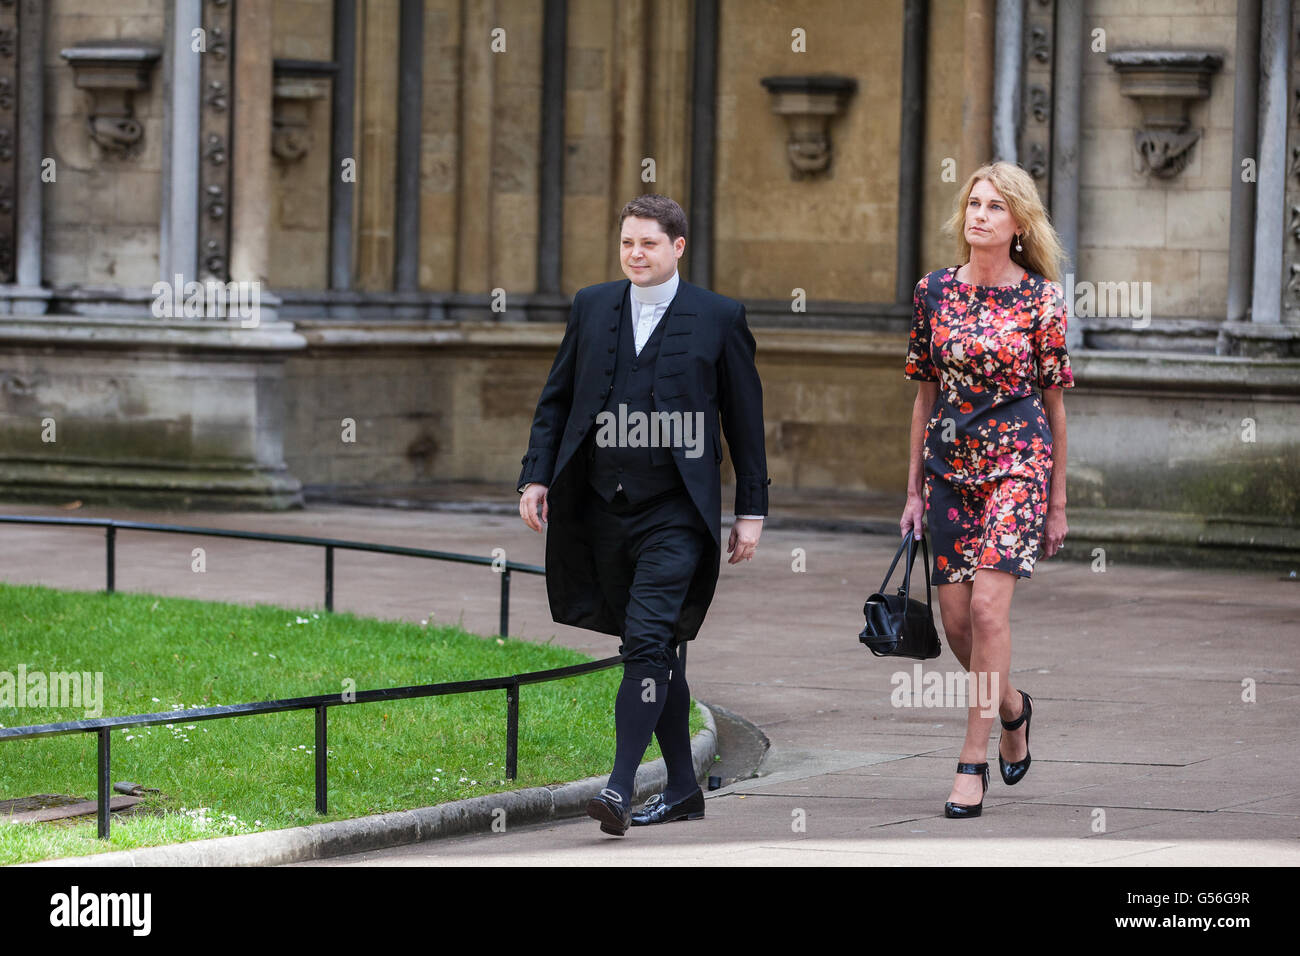 London, UK. 20th June, 2016. Sally Bercow (r), wife of the Speaker of the House of Commons John Bercow, arrives - Stock Image